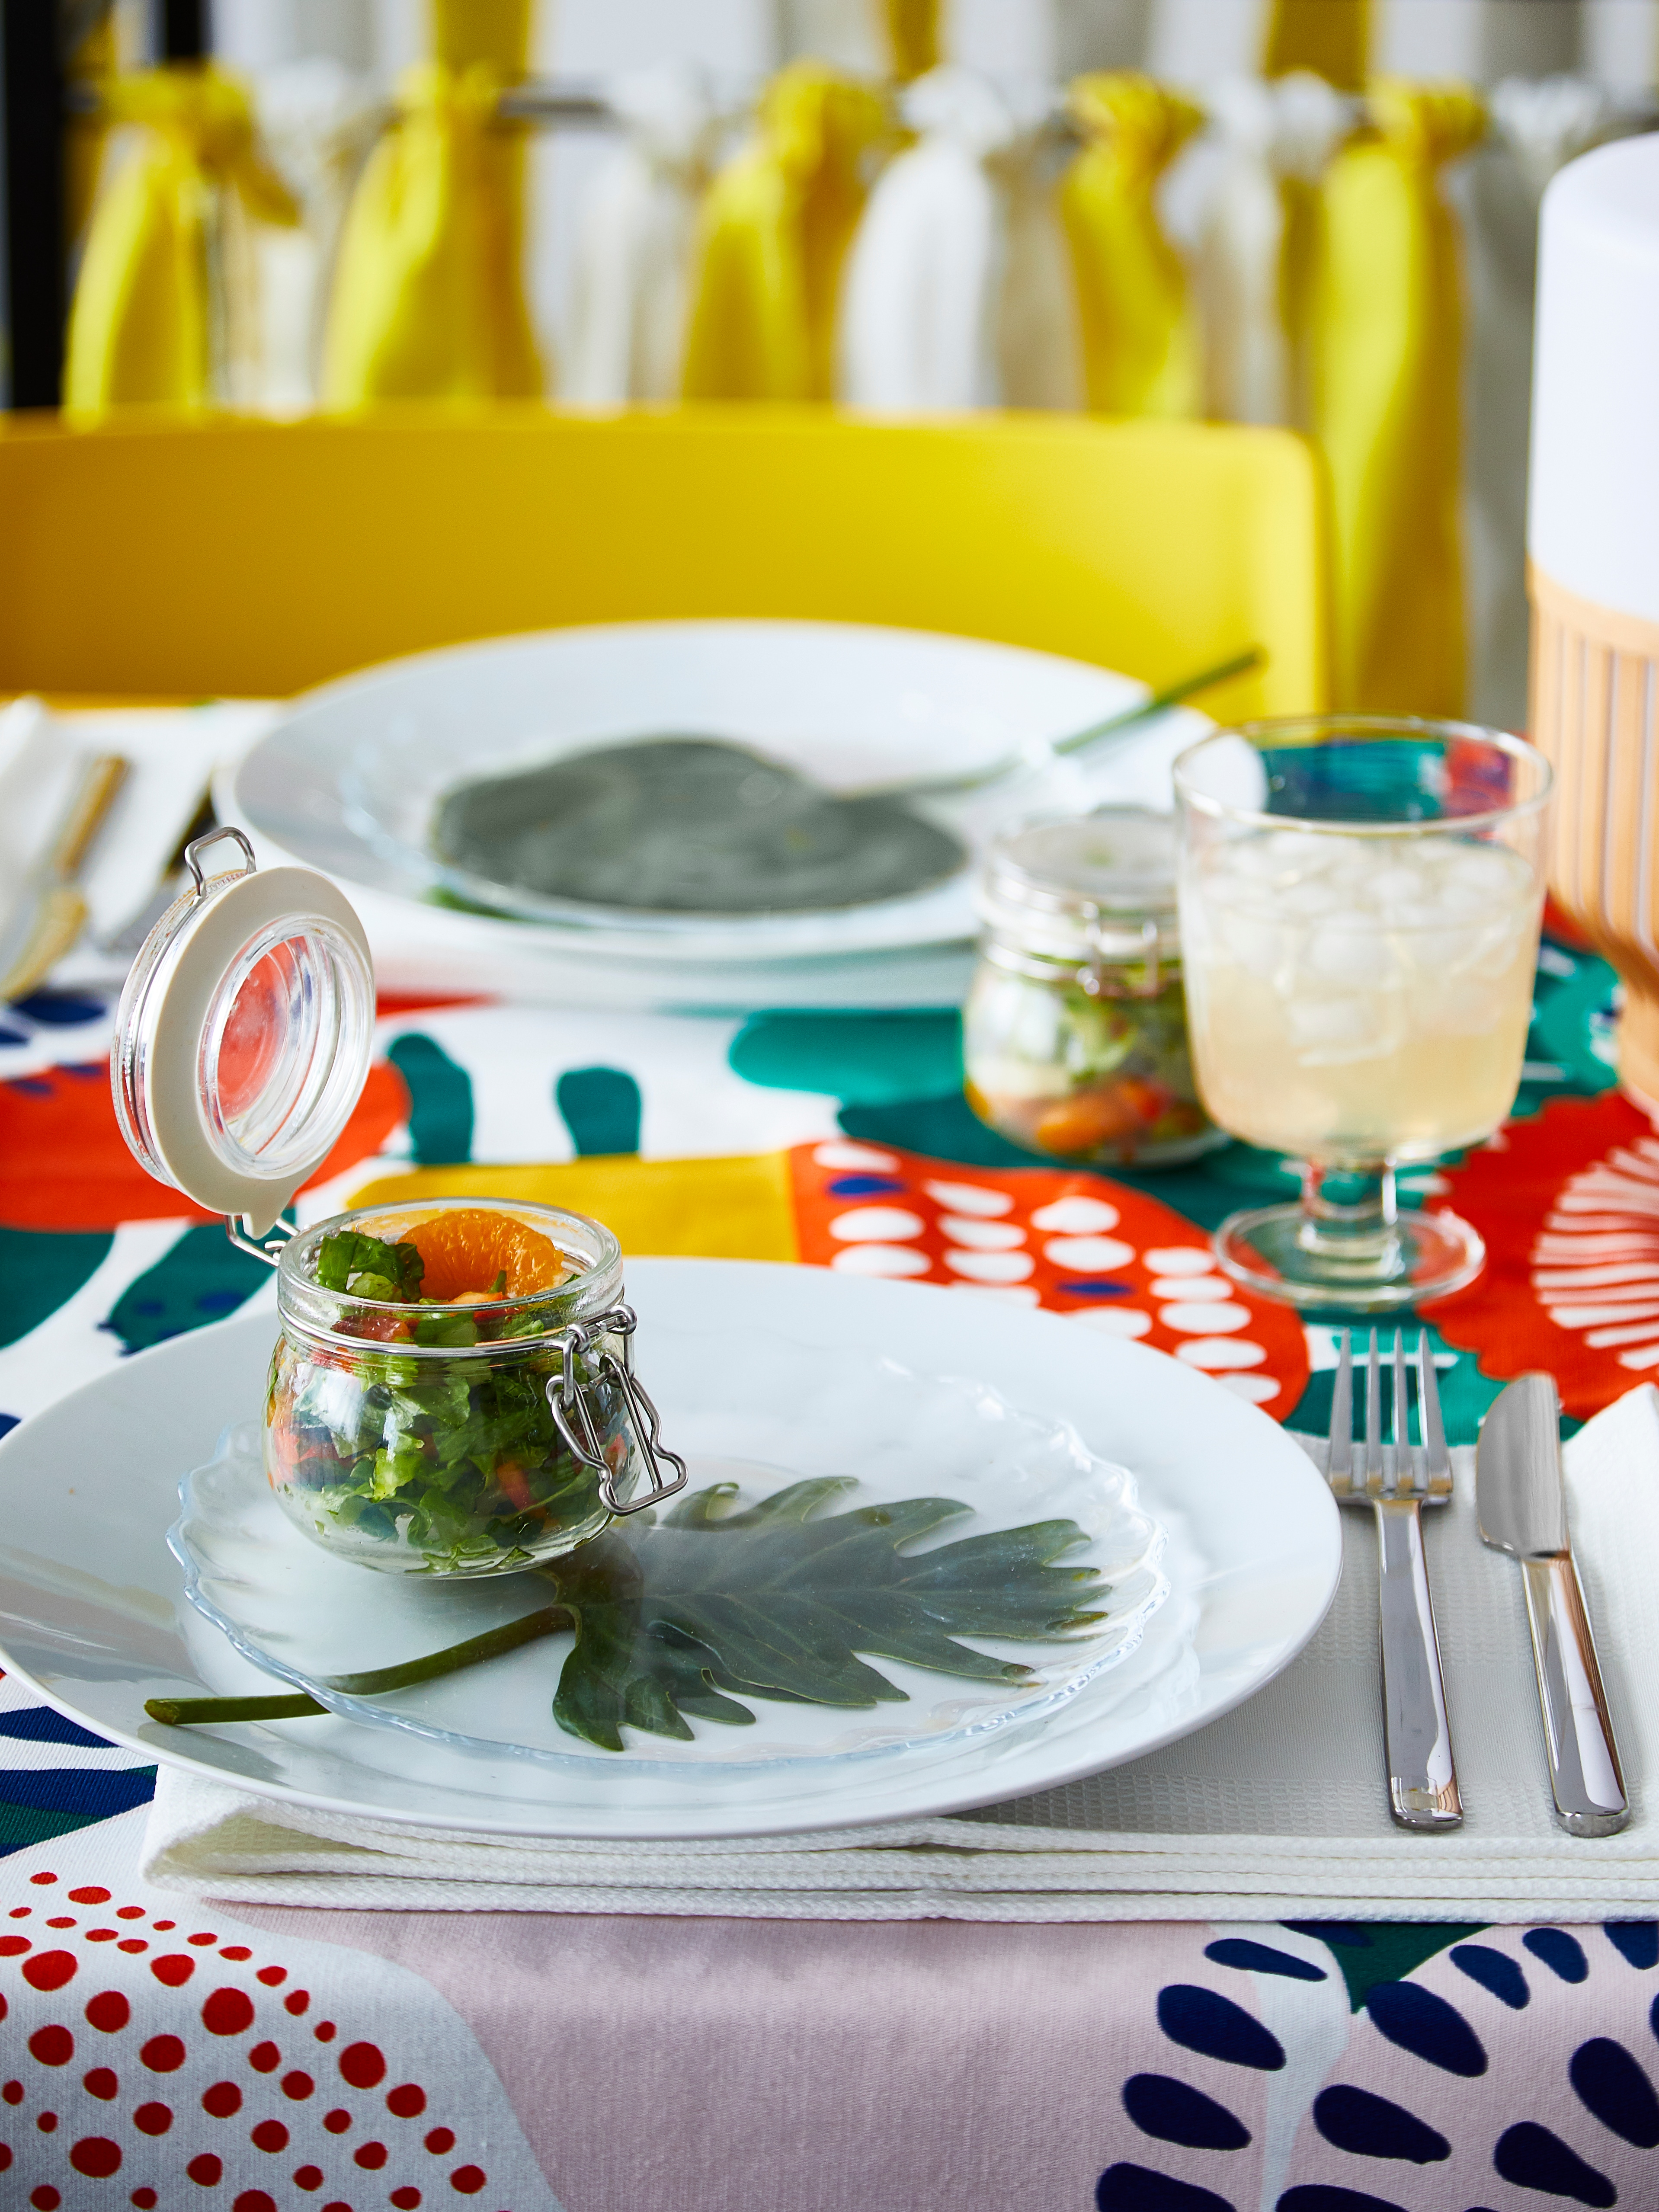 A place setting on brightly patterned table cloth with a drink in a glass and a salad in a clear glass KORKEN jar with lid.